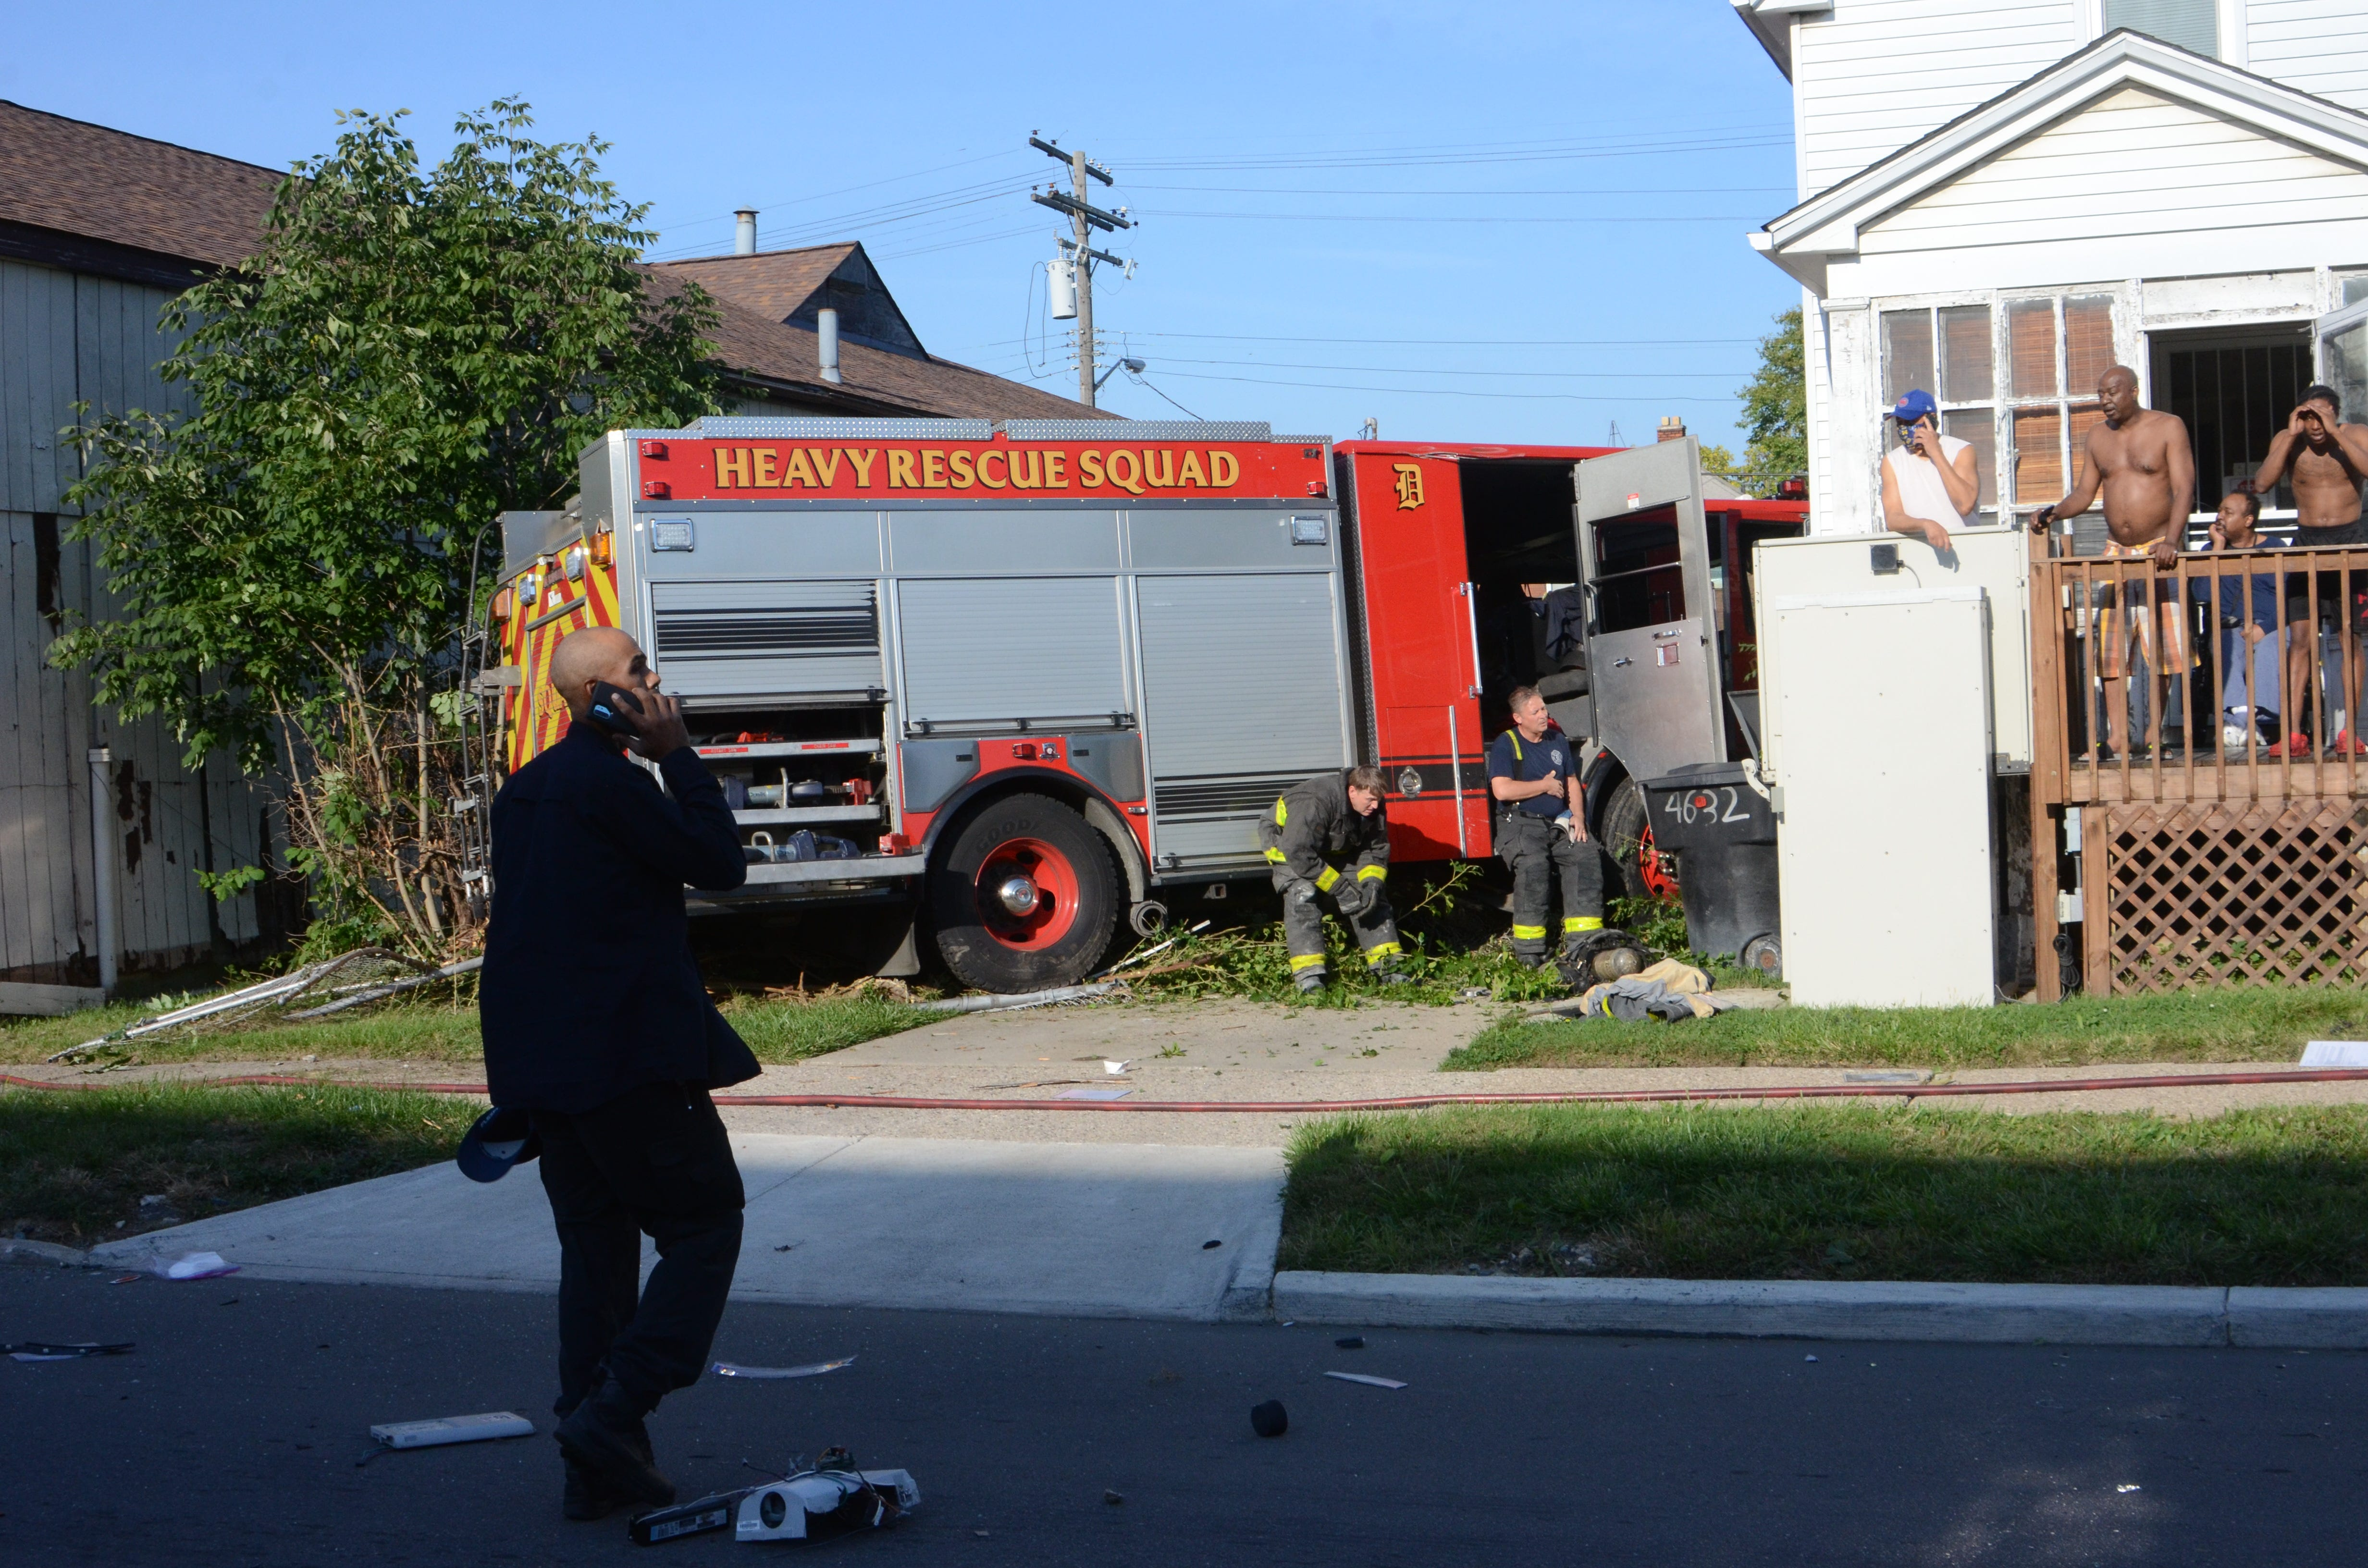 Firefighter ejected from truck in collision with vehicle en route to Detroit fire